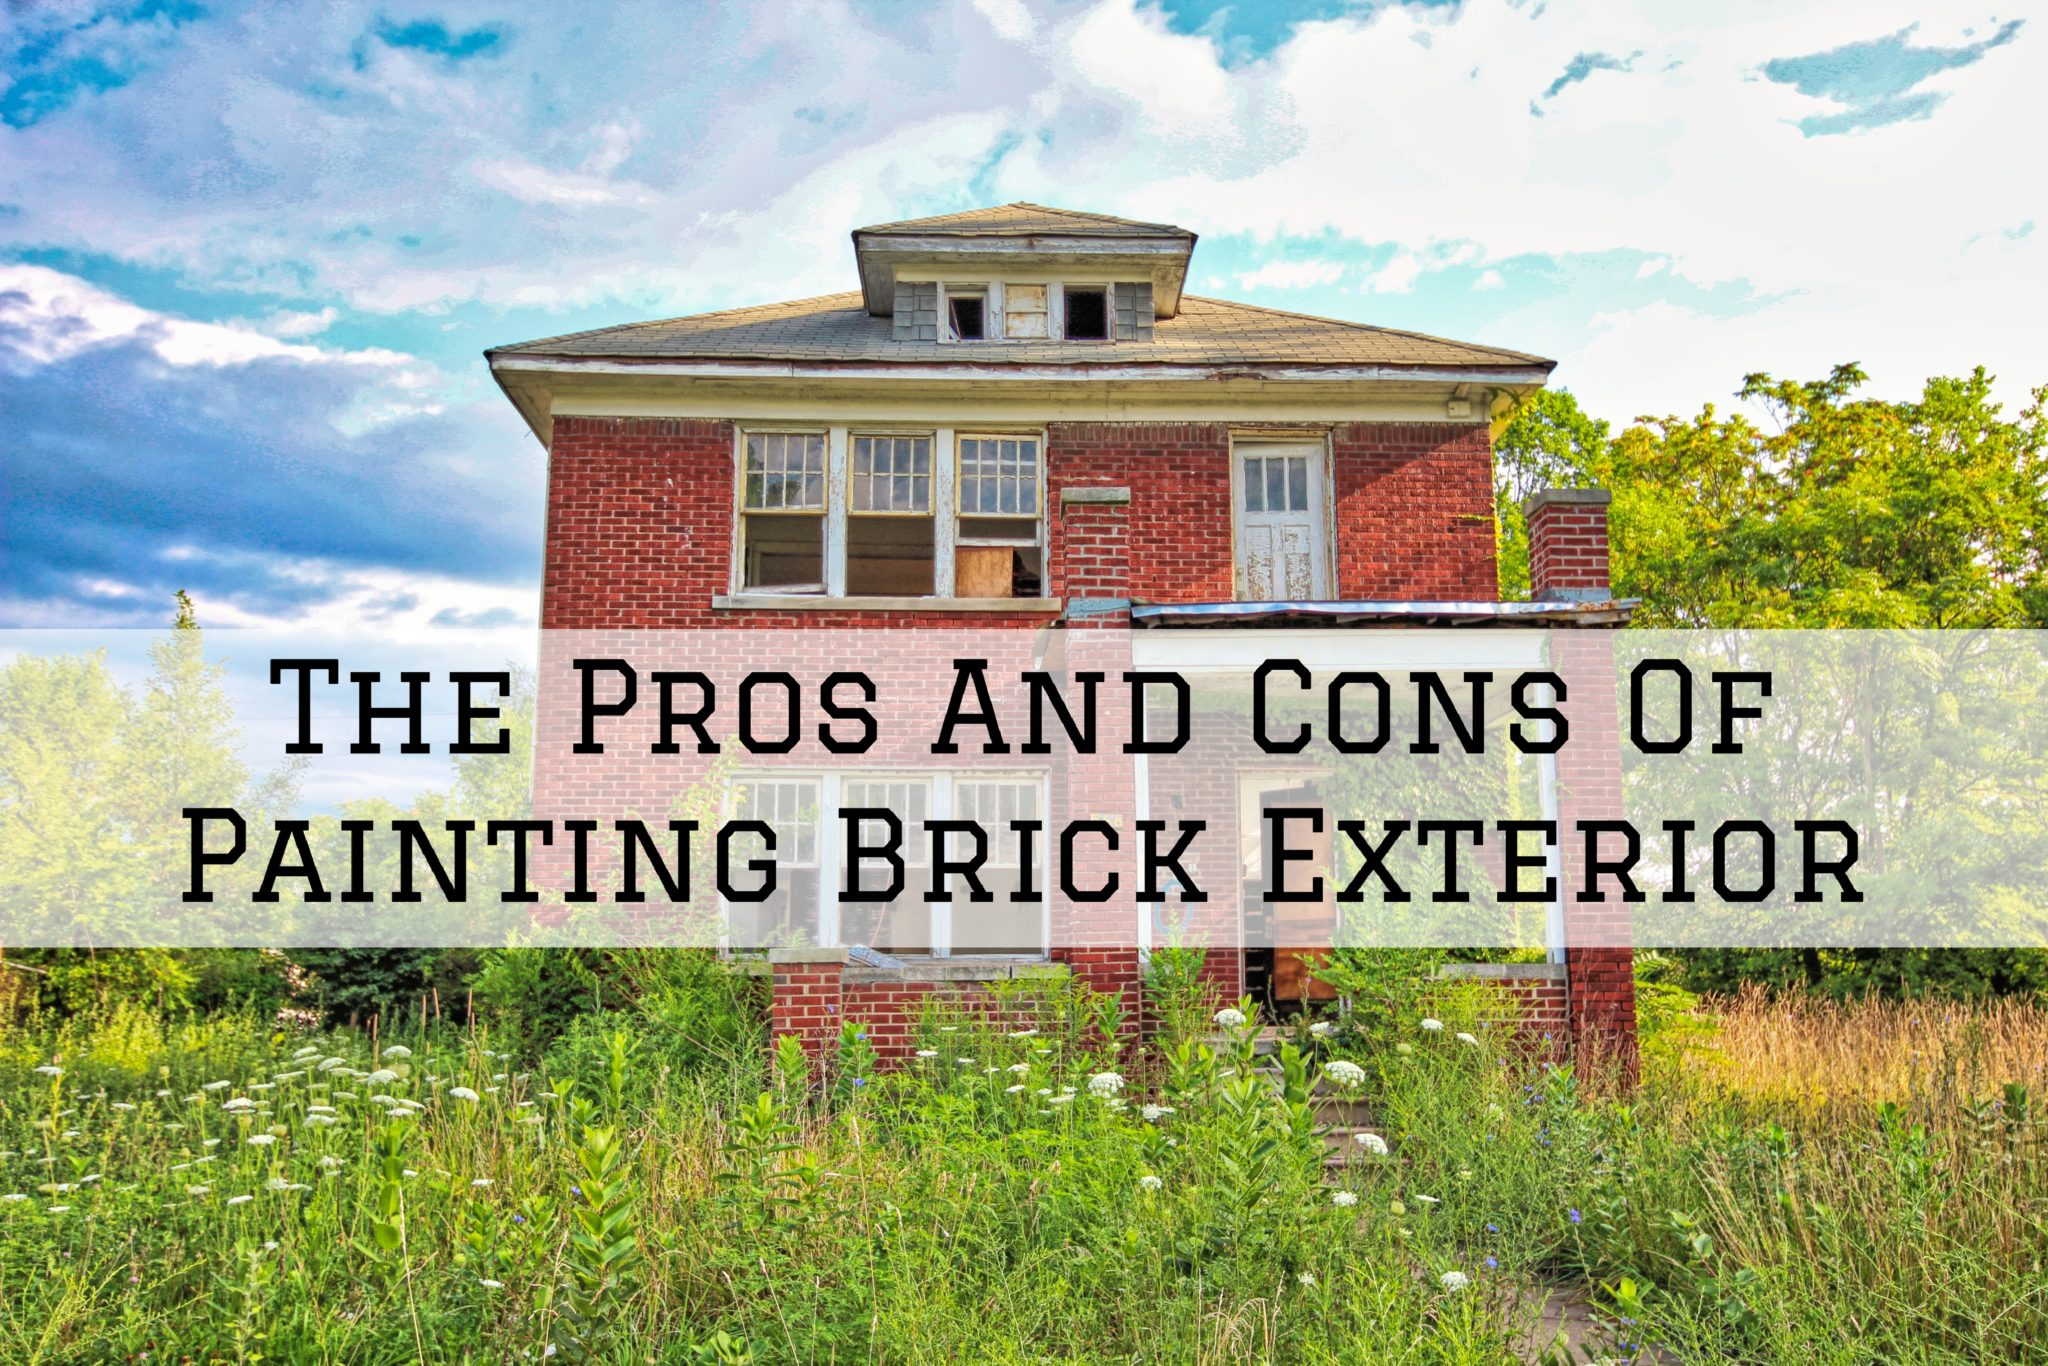 The Pros And Cons Of Painting Brick Exterior in